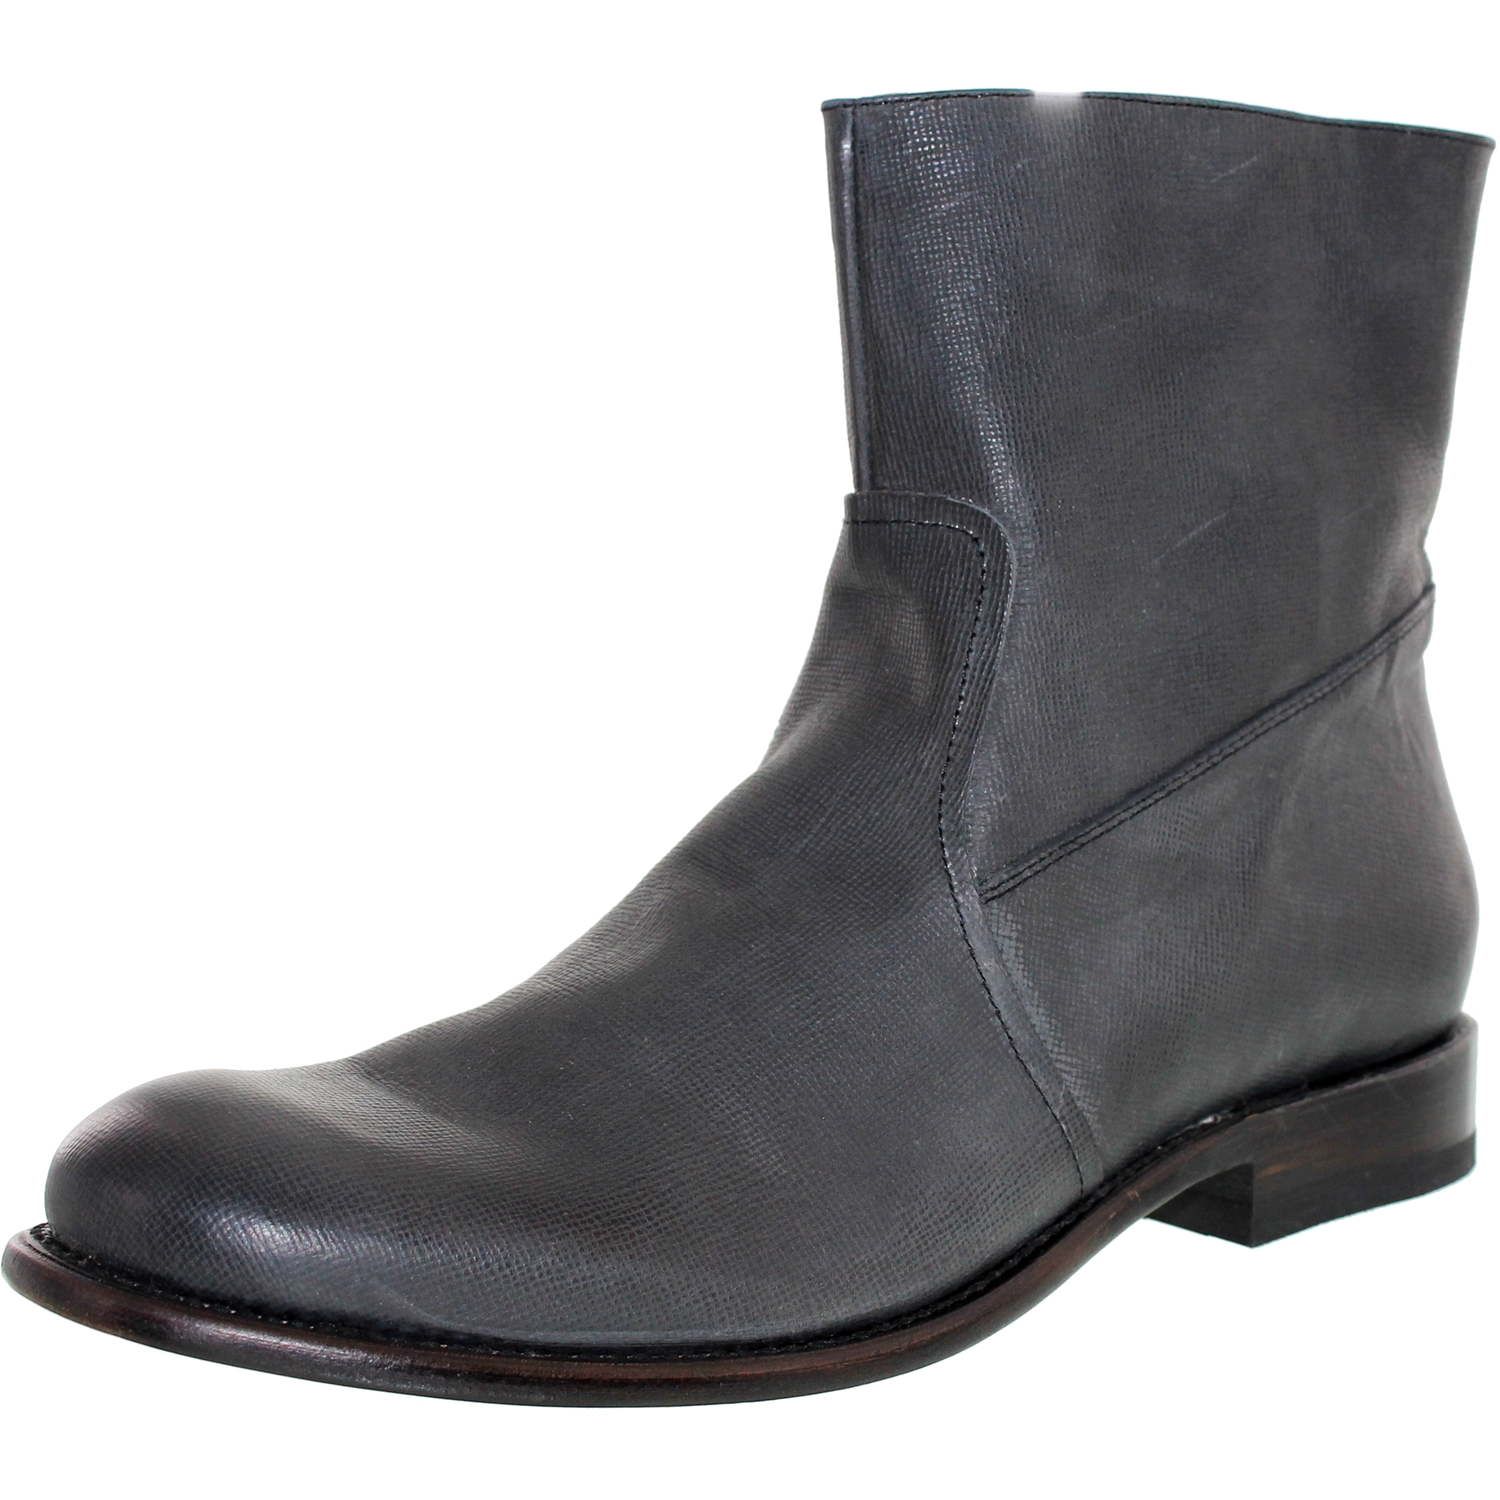 J.D. Fisk Men's Dale Black Ankle-High Leather Boot - 8.5M